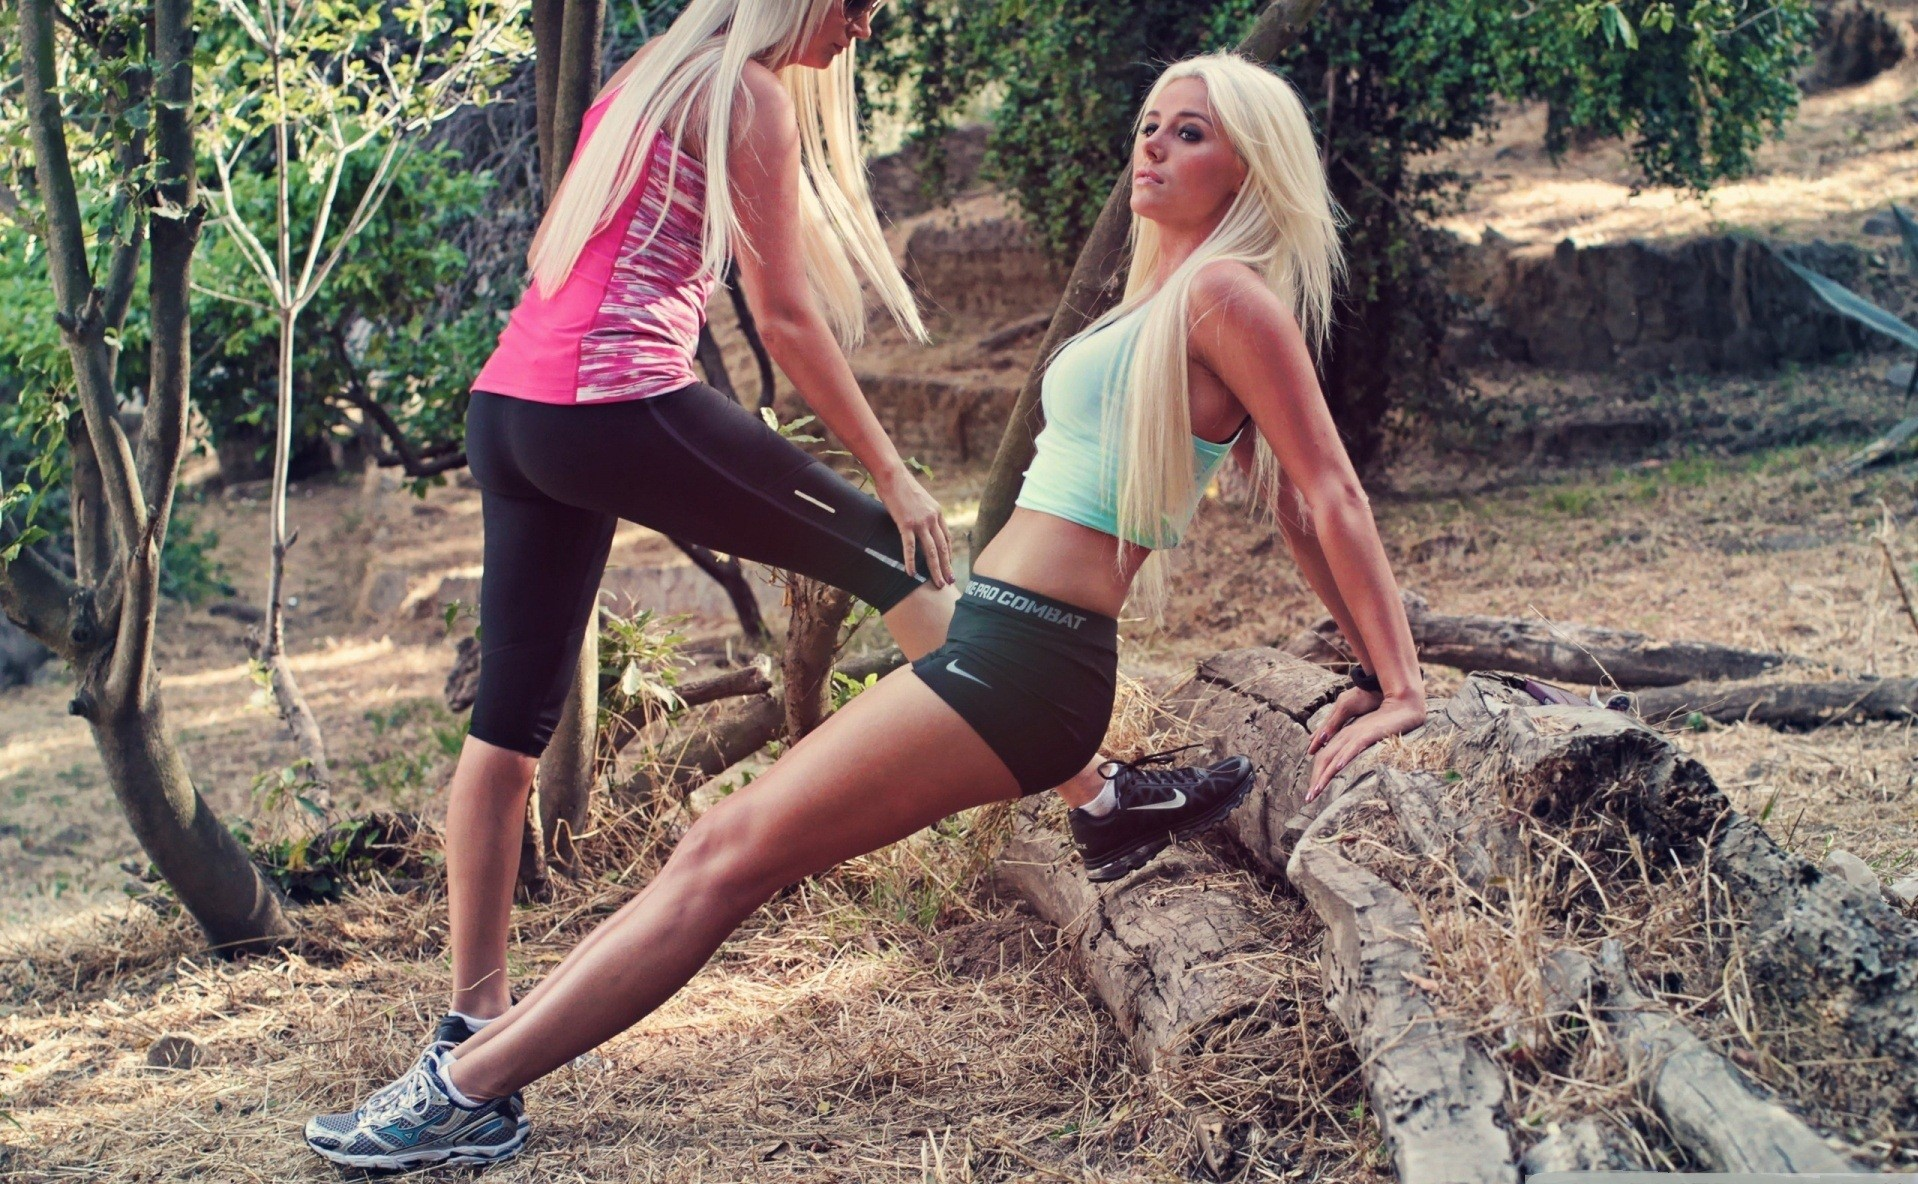 Blondes do sports in the park wallpaper